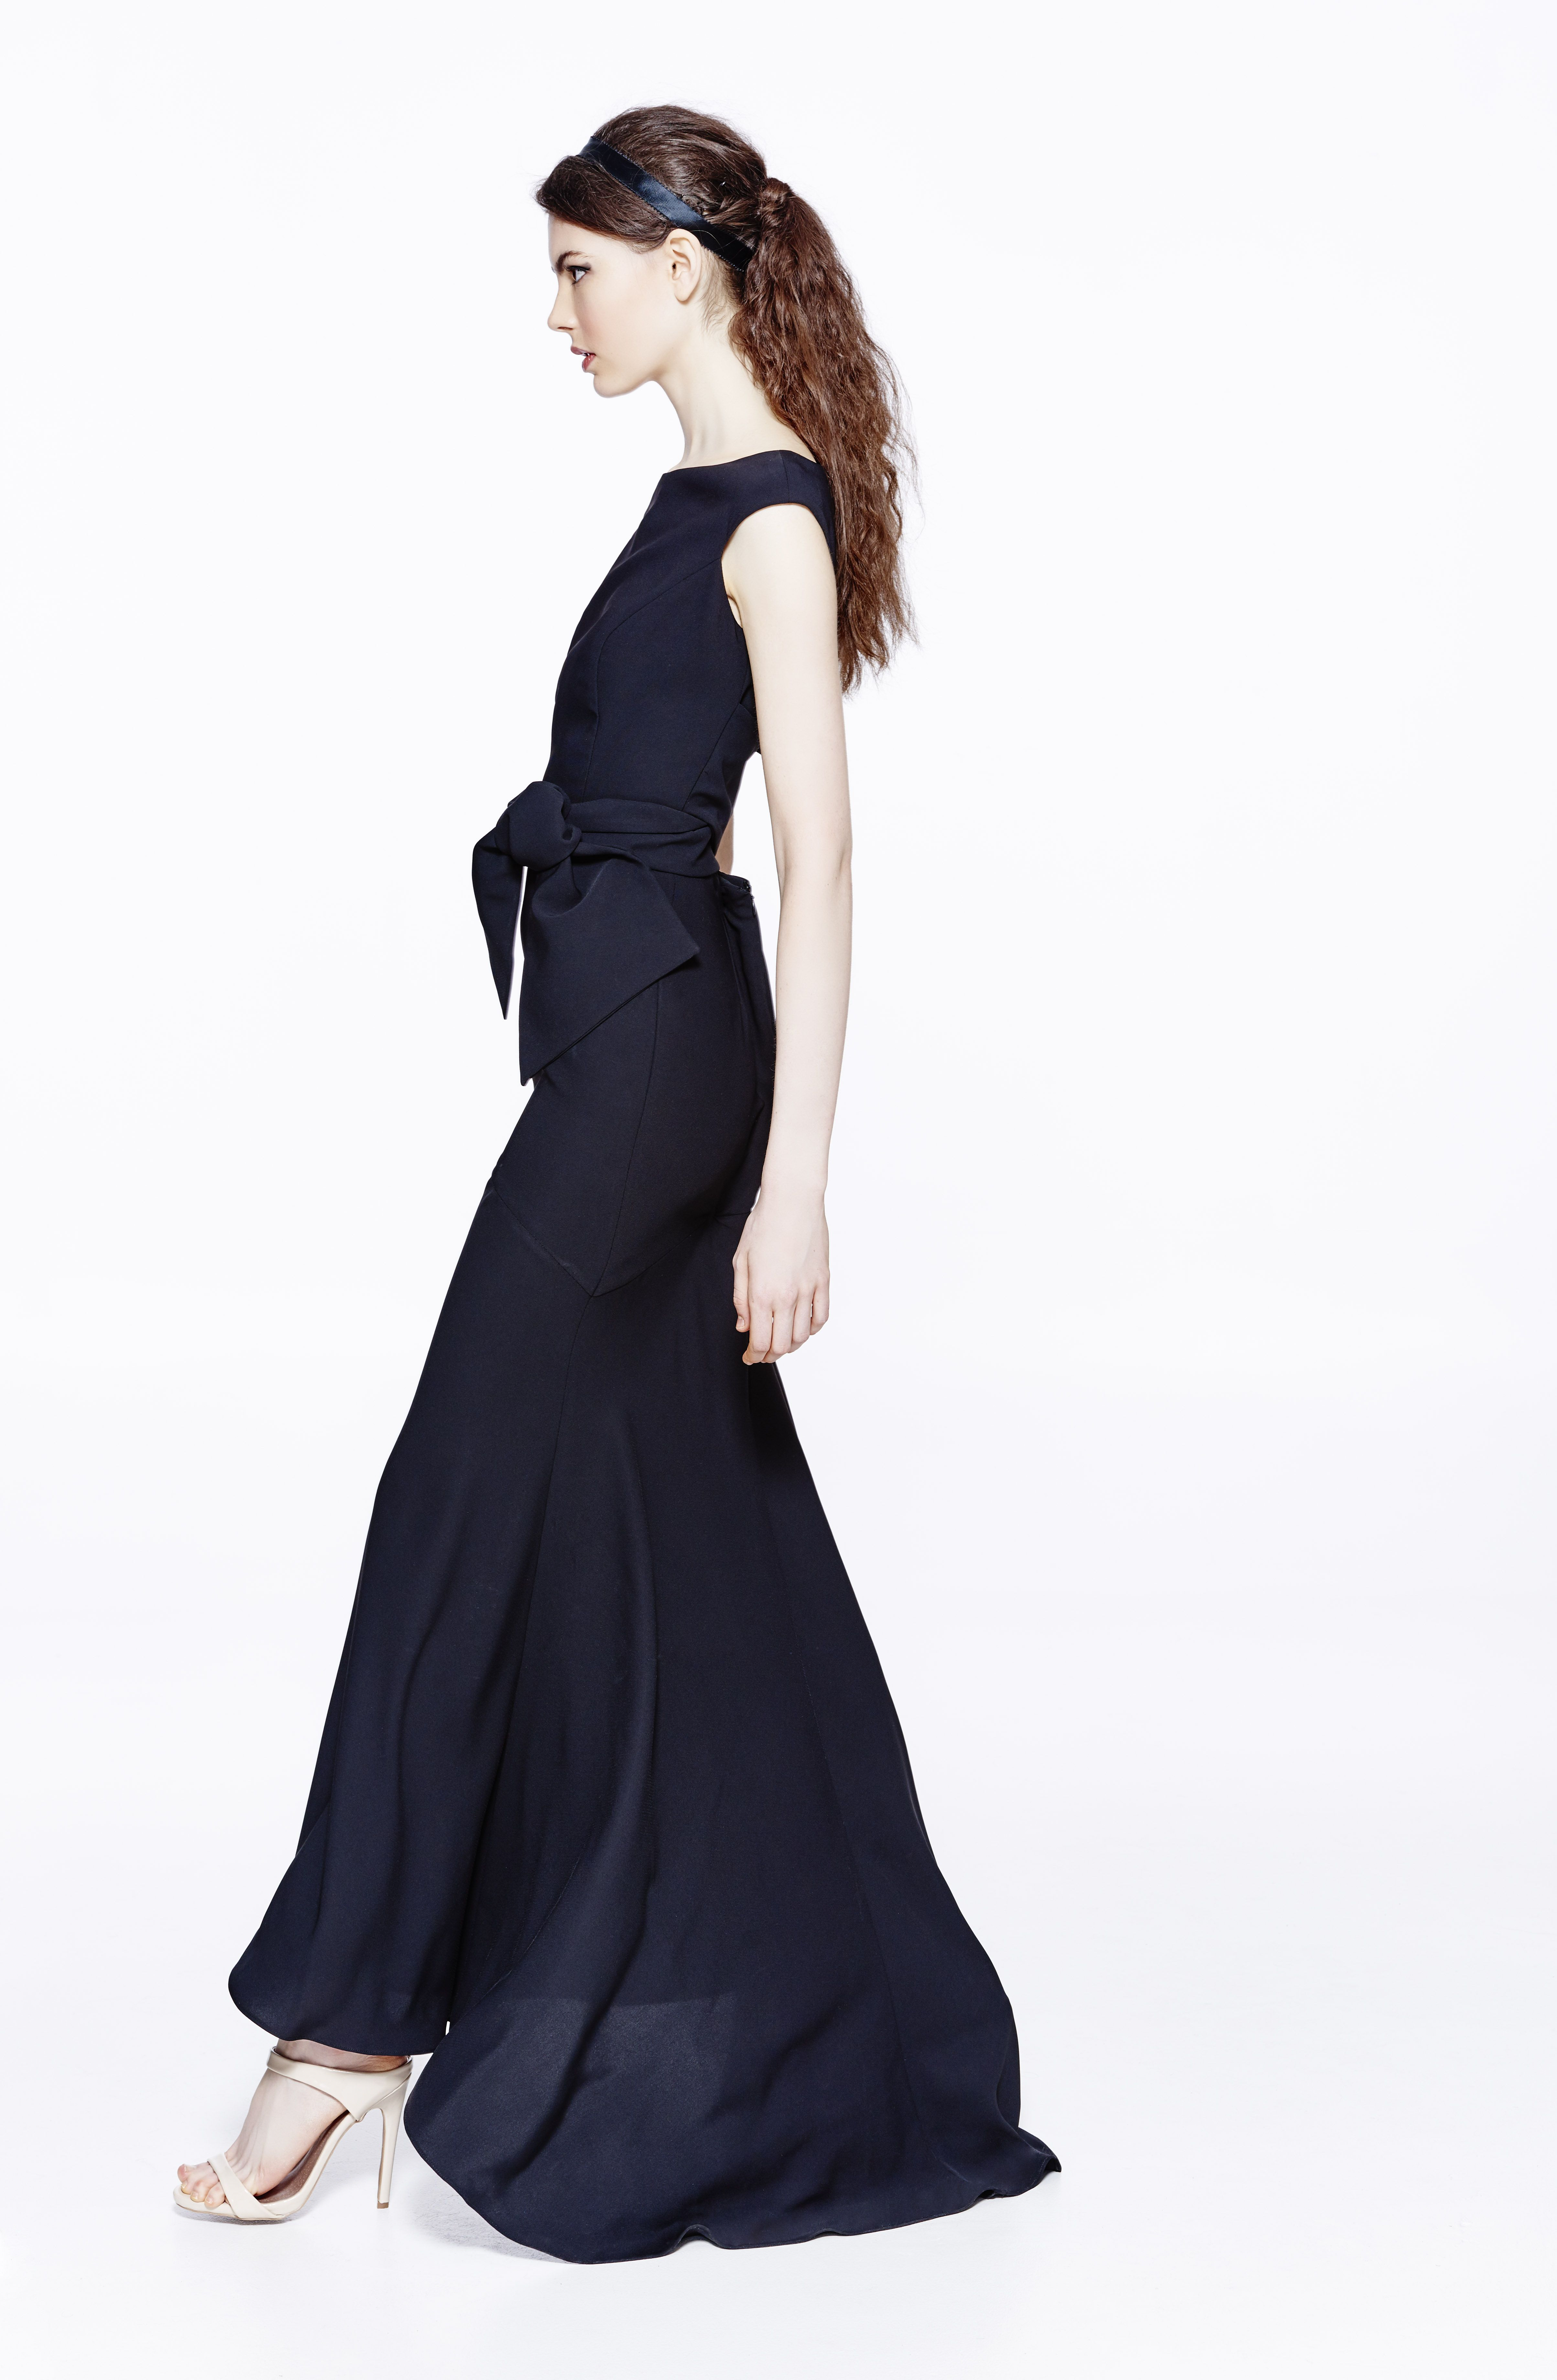 Eileen Kirby Bringing Back the Art of Elegance One Dress at